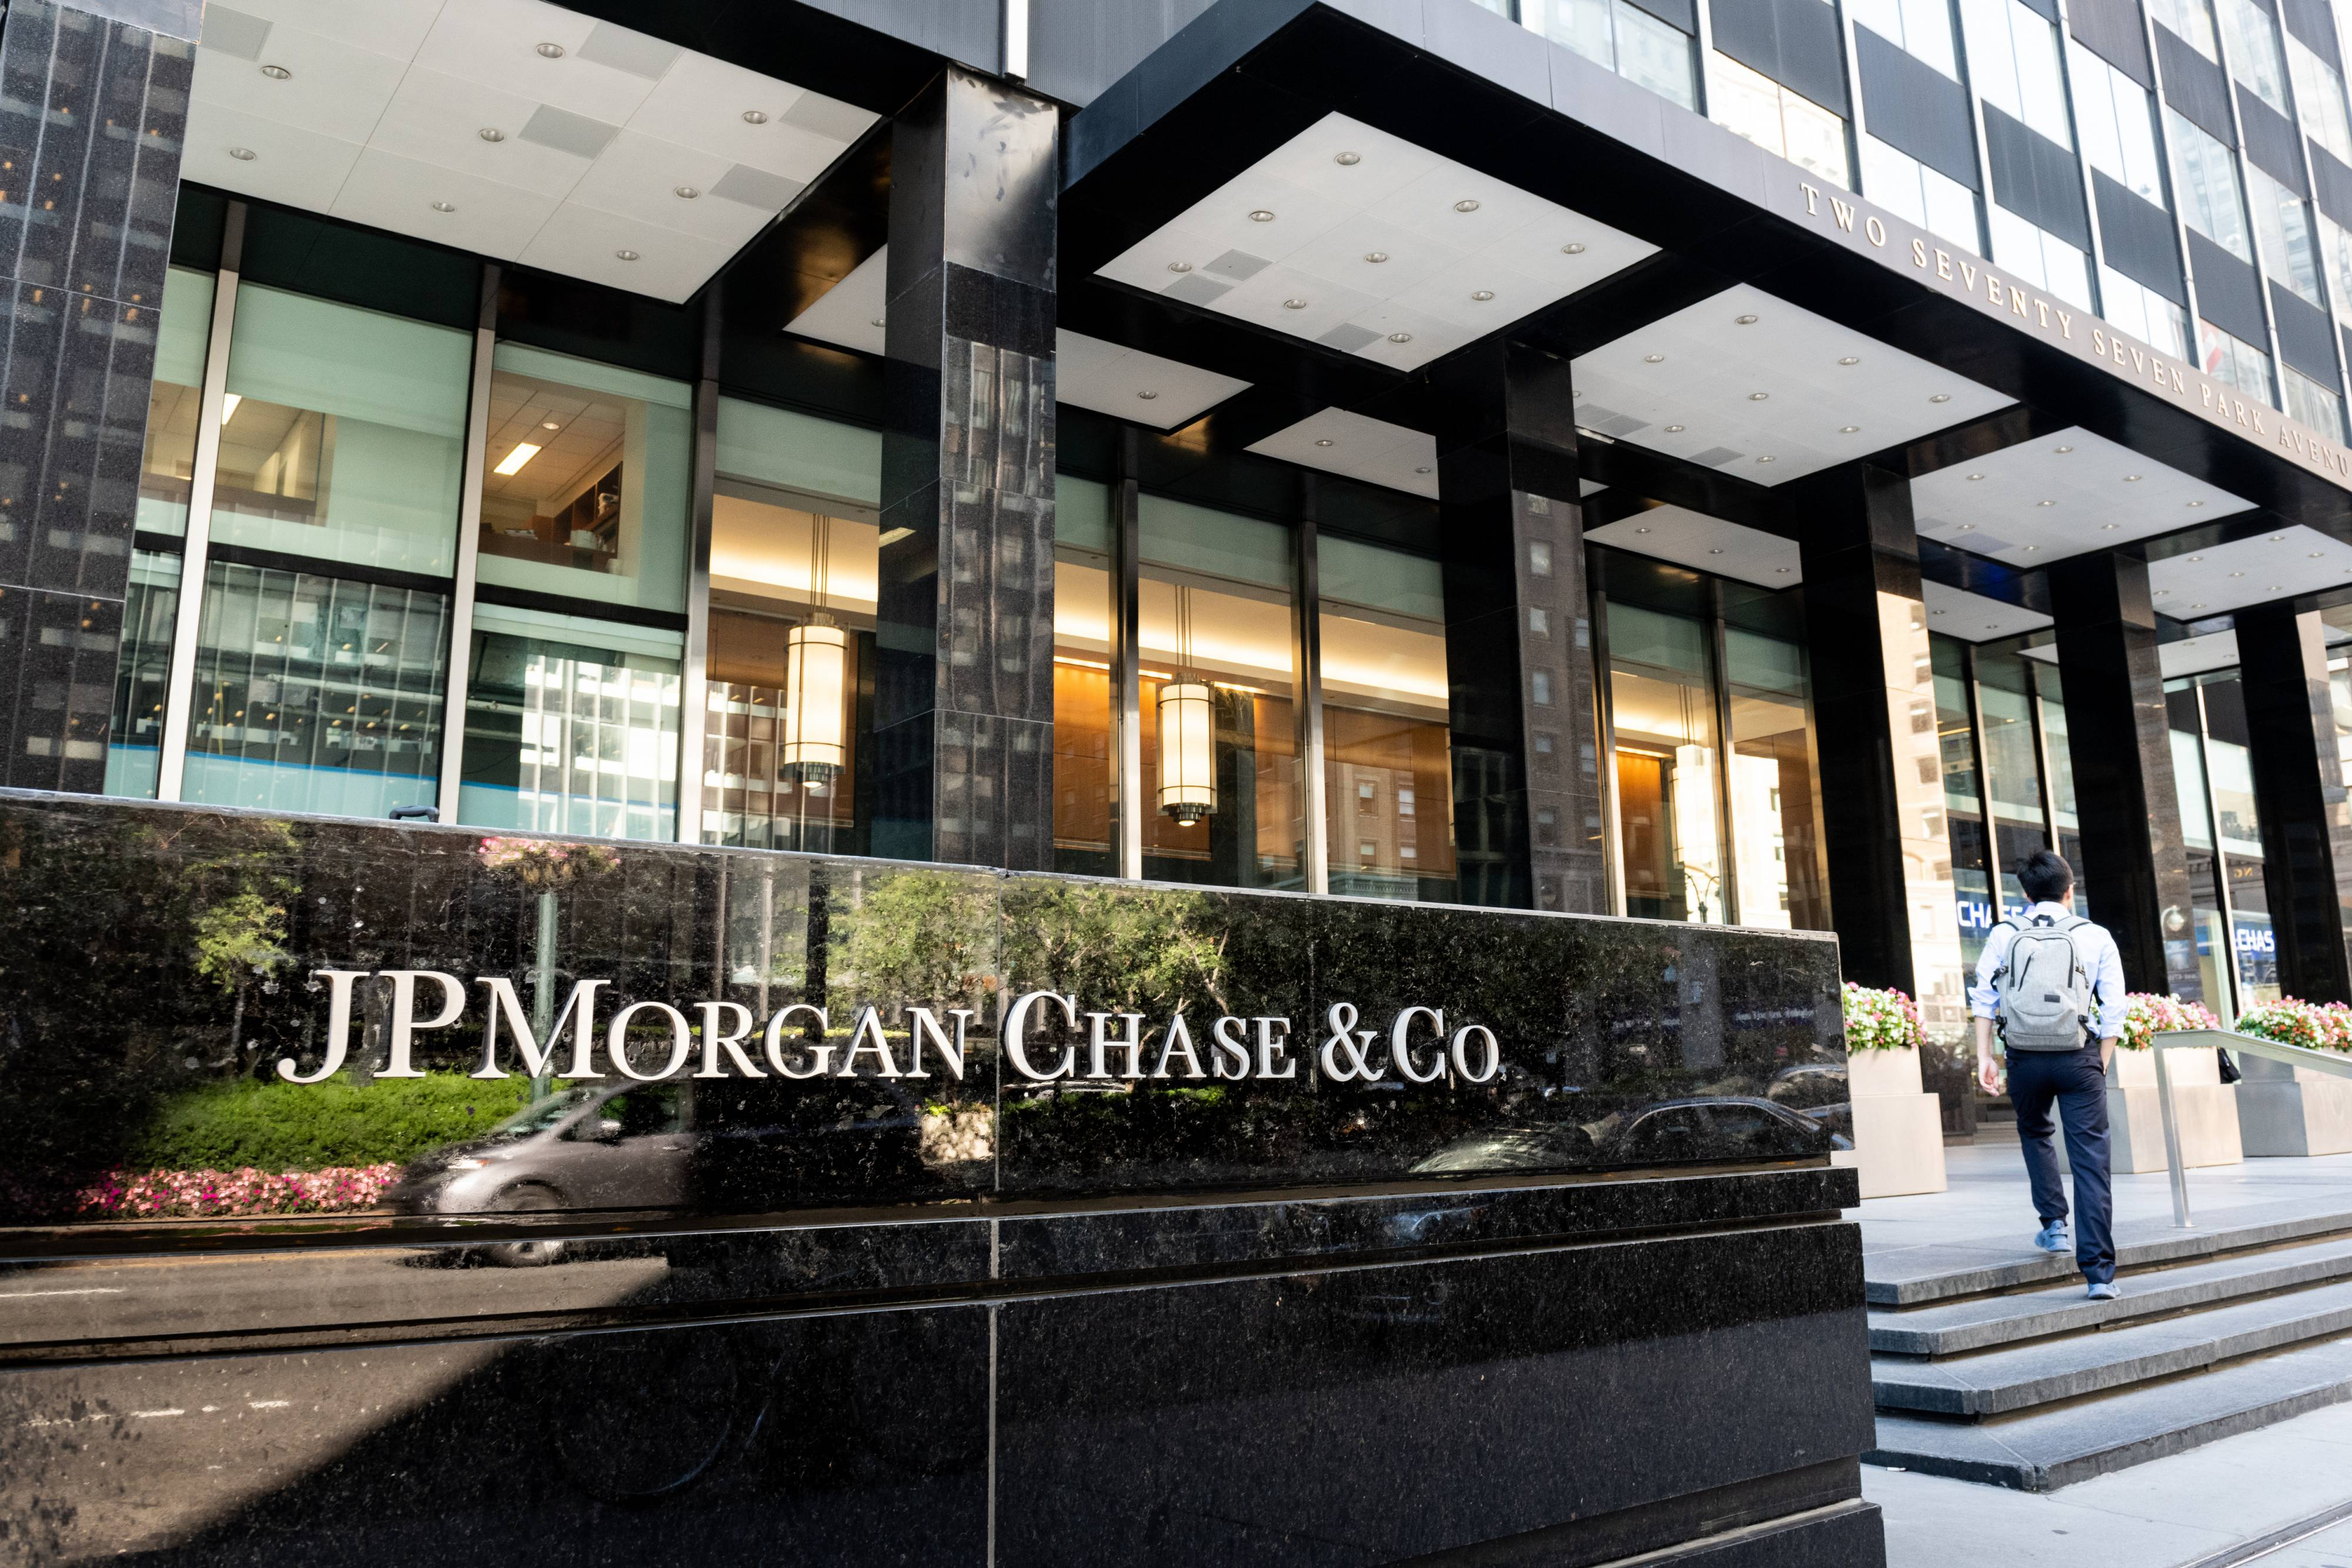 JPMorgan Chase & Co. building on Park Avenue in New York